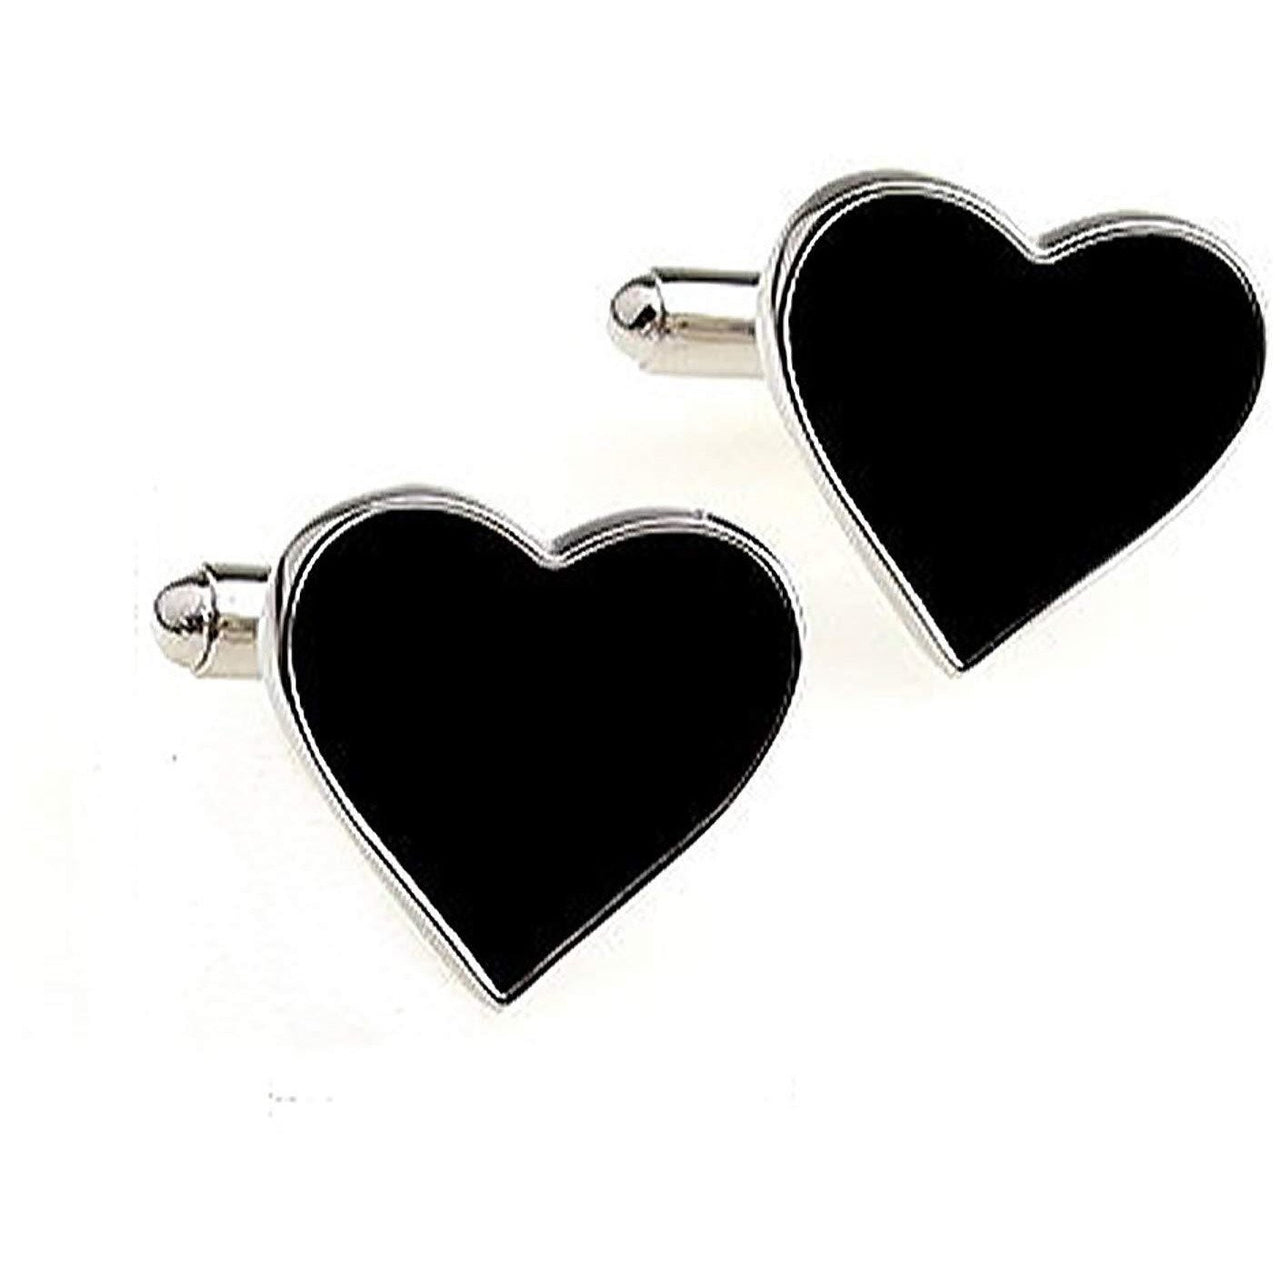 Silver and Black Heart Cufflinks